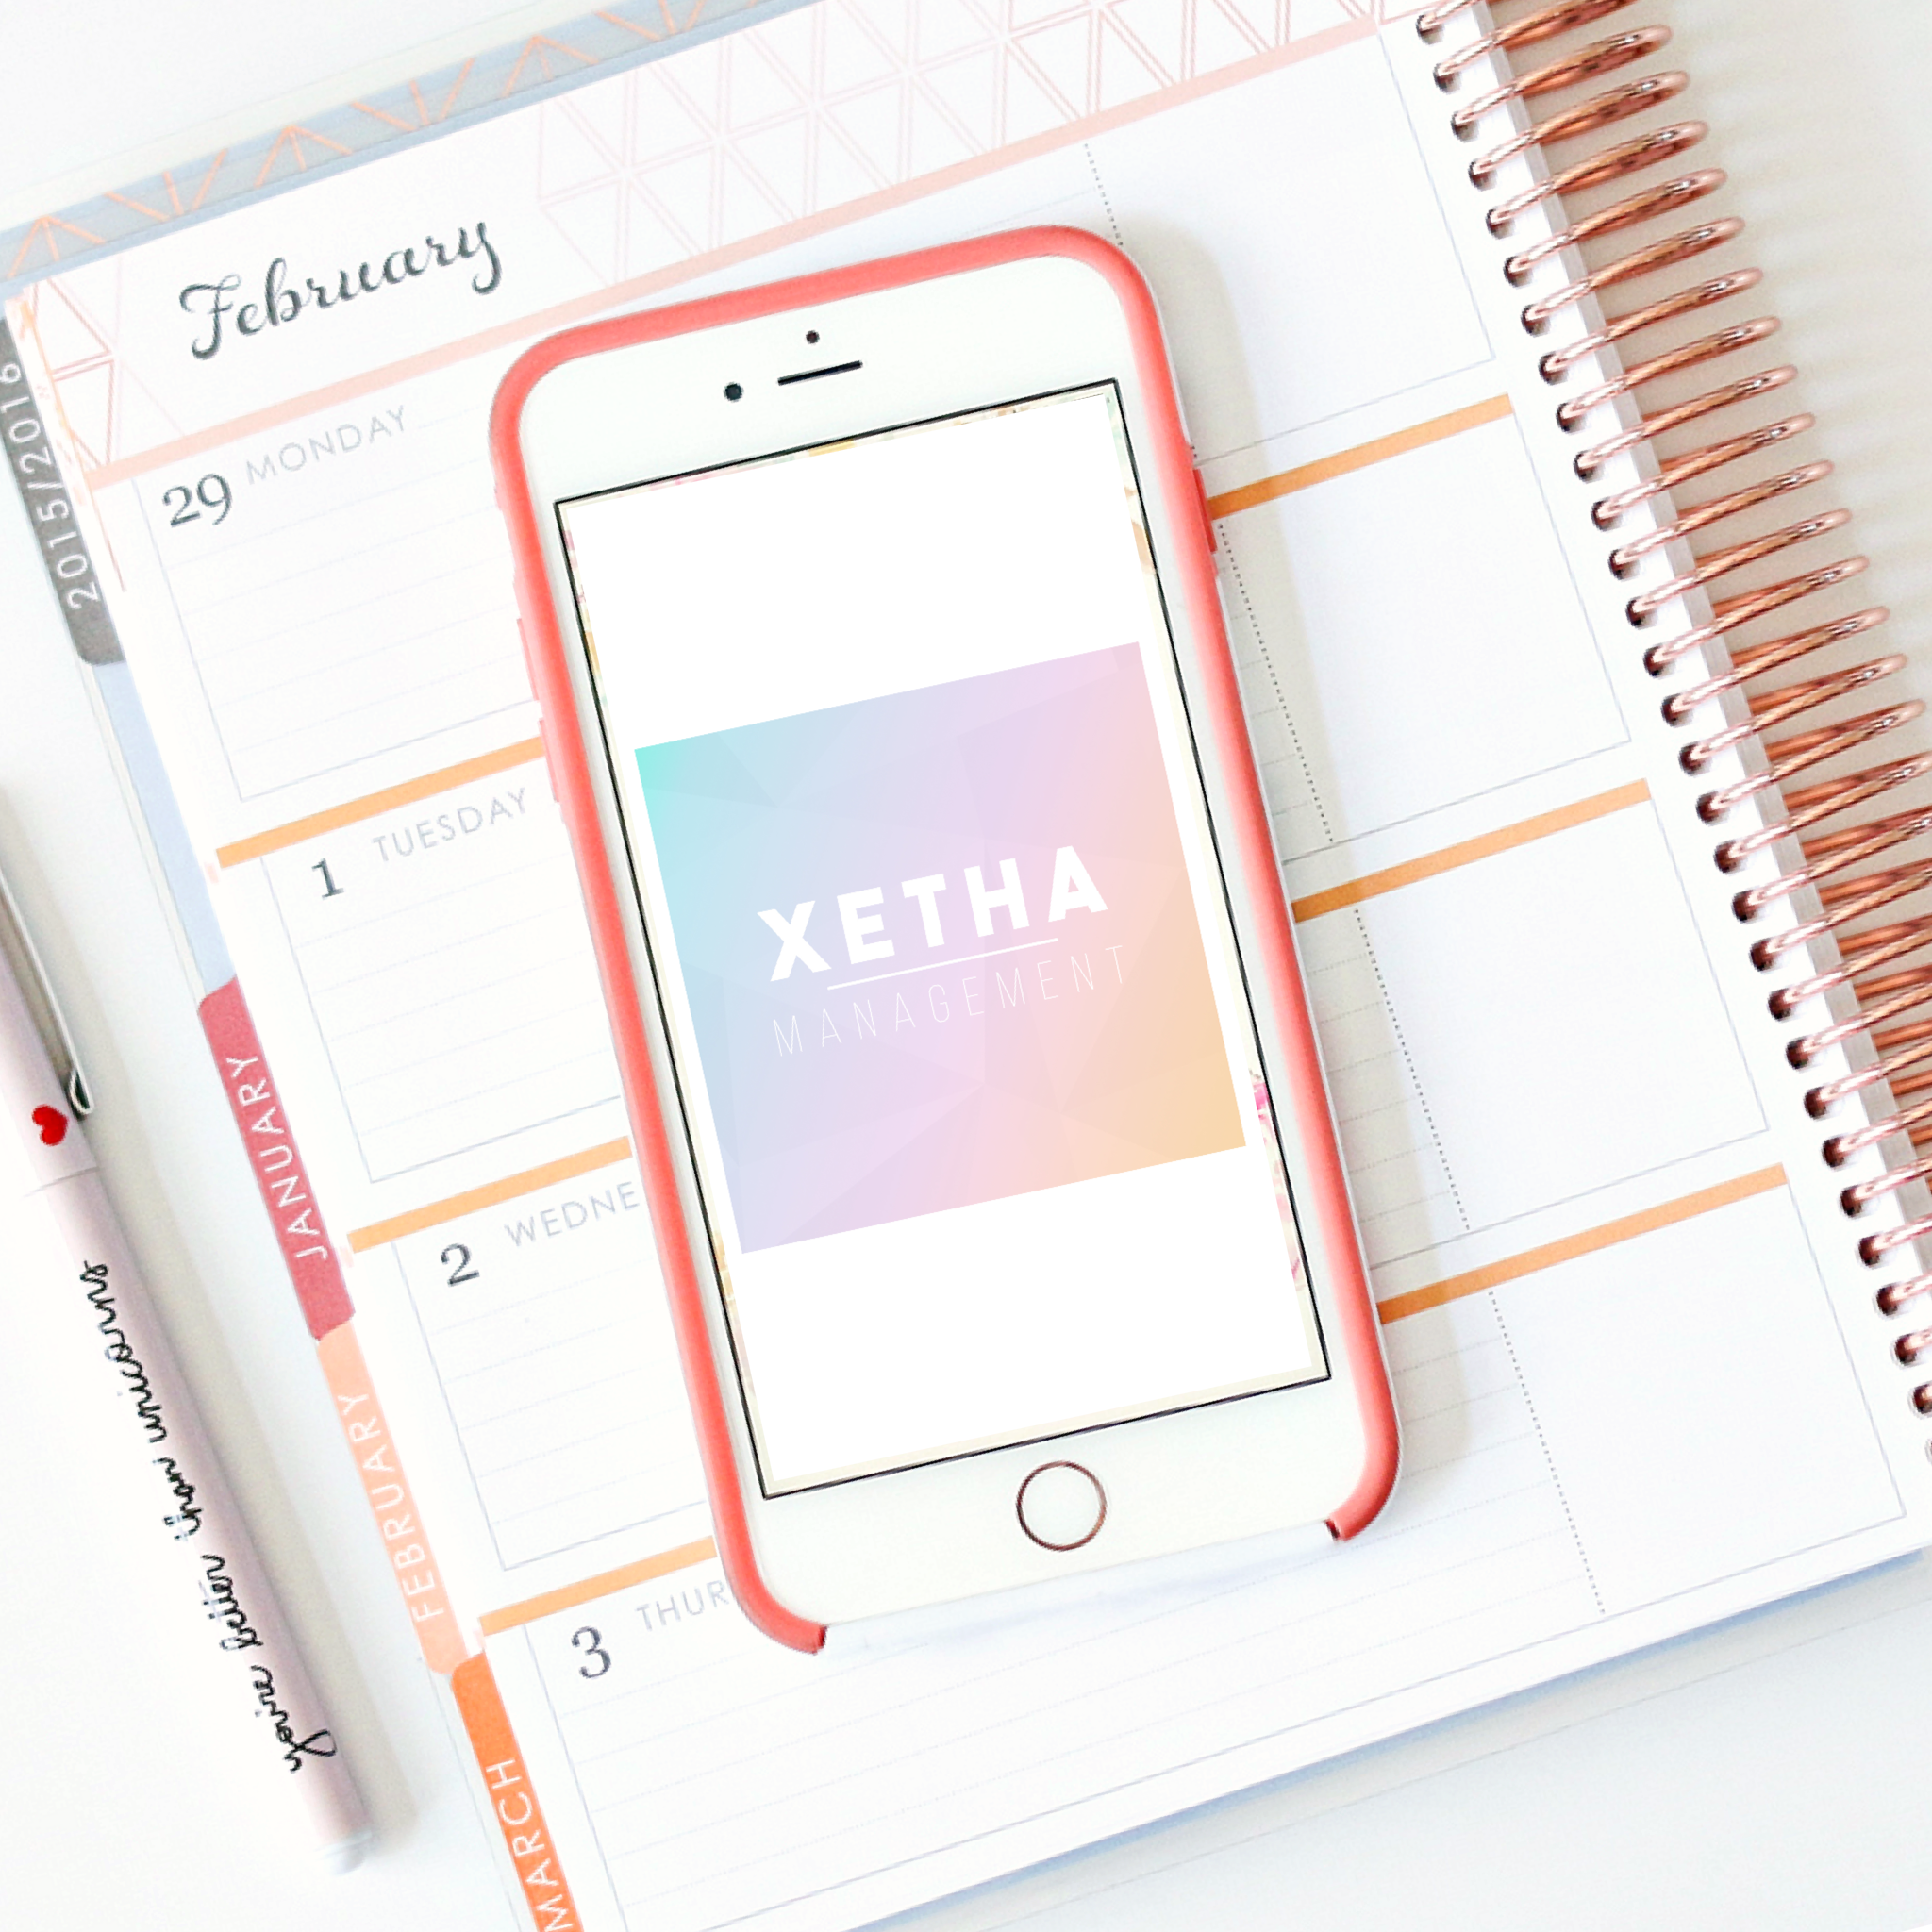 virtual assistant xetha management va virtual asisstance